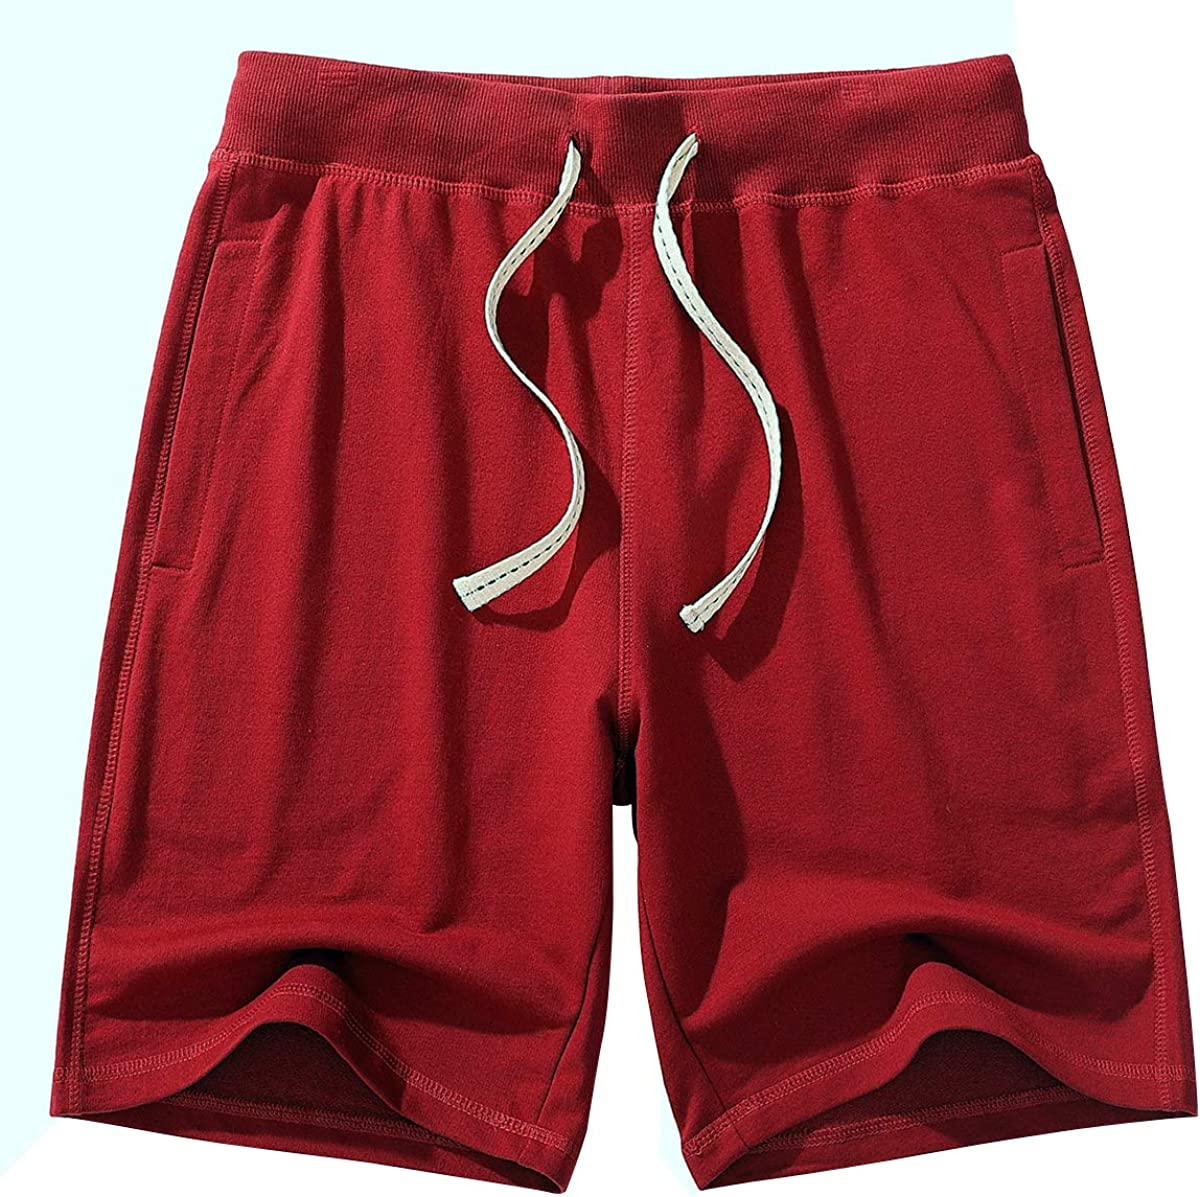 Amy Coulee Men's Casual Shorts